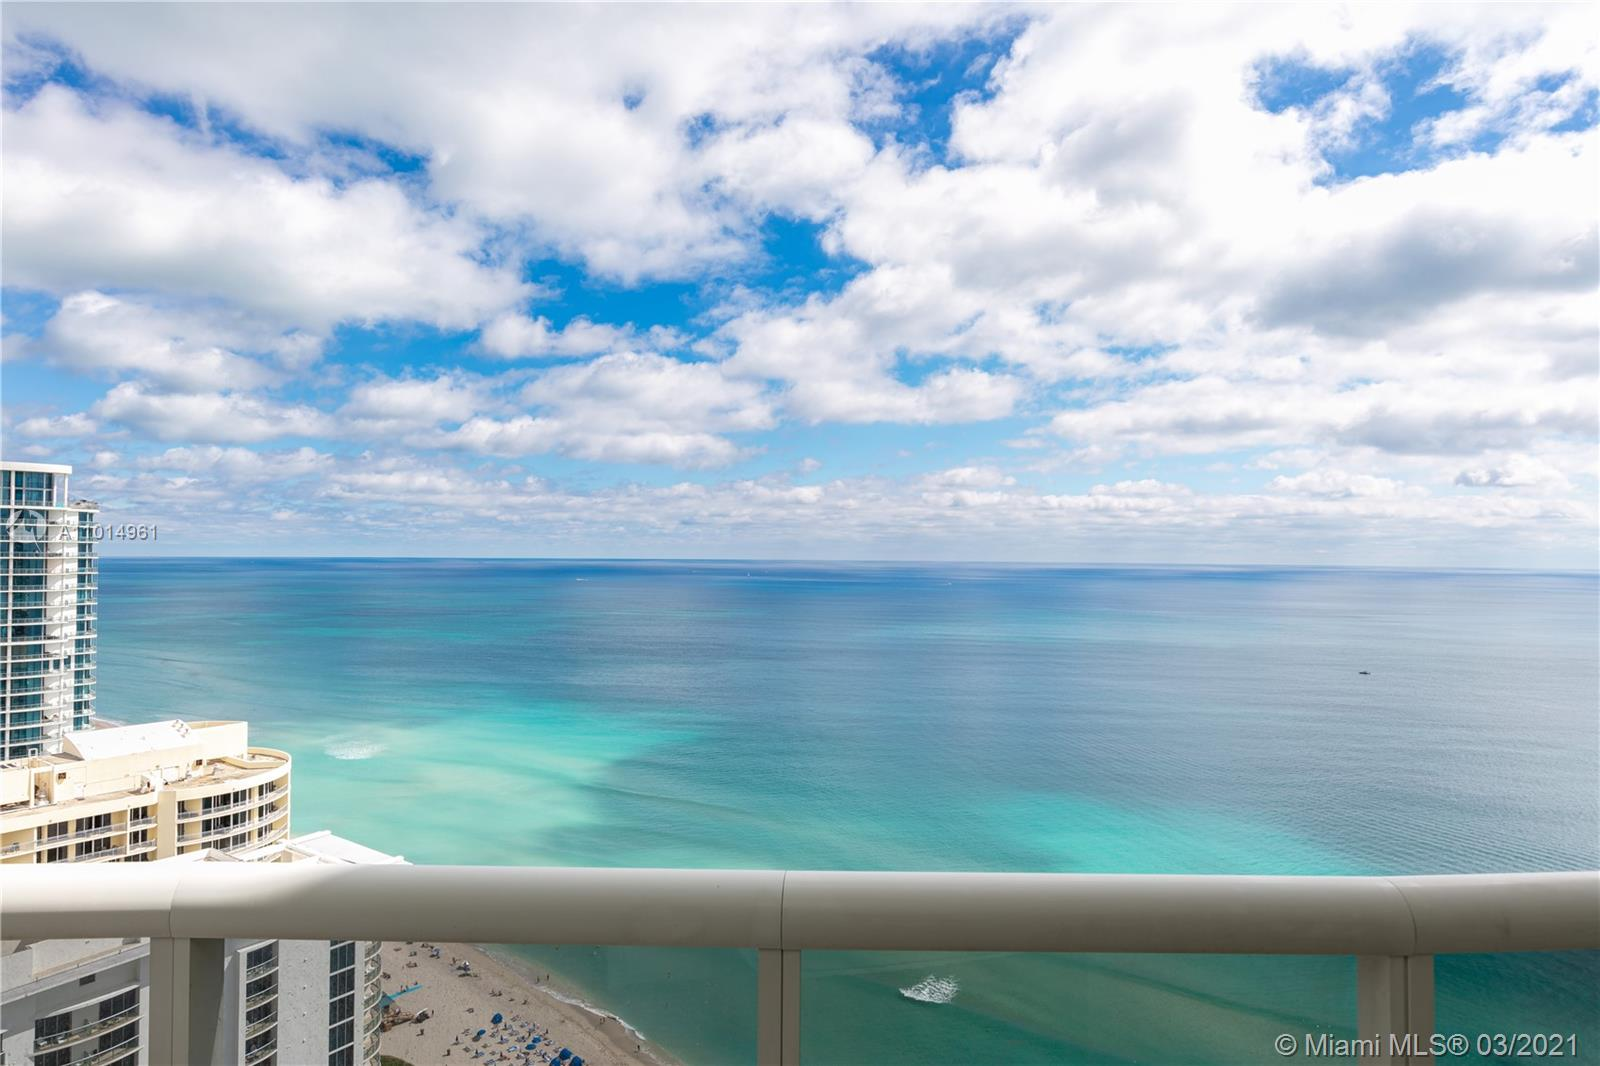 Stunning condo in the sky with phenomenal views. This corner unit has both intracoastal and direct ocean views. Large laundry room with new open kitchen and bathrooms. The 07 line is the largest 2 bedroom in Ocean Four with flow through views. Ocean Four features a game room, restaurant, fitness center with classes and pool/beach service.